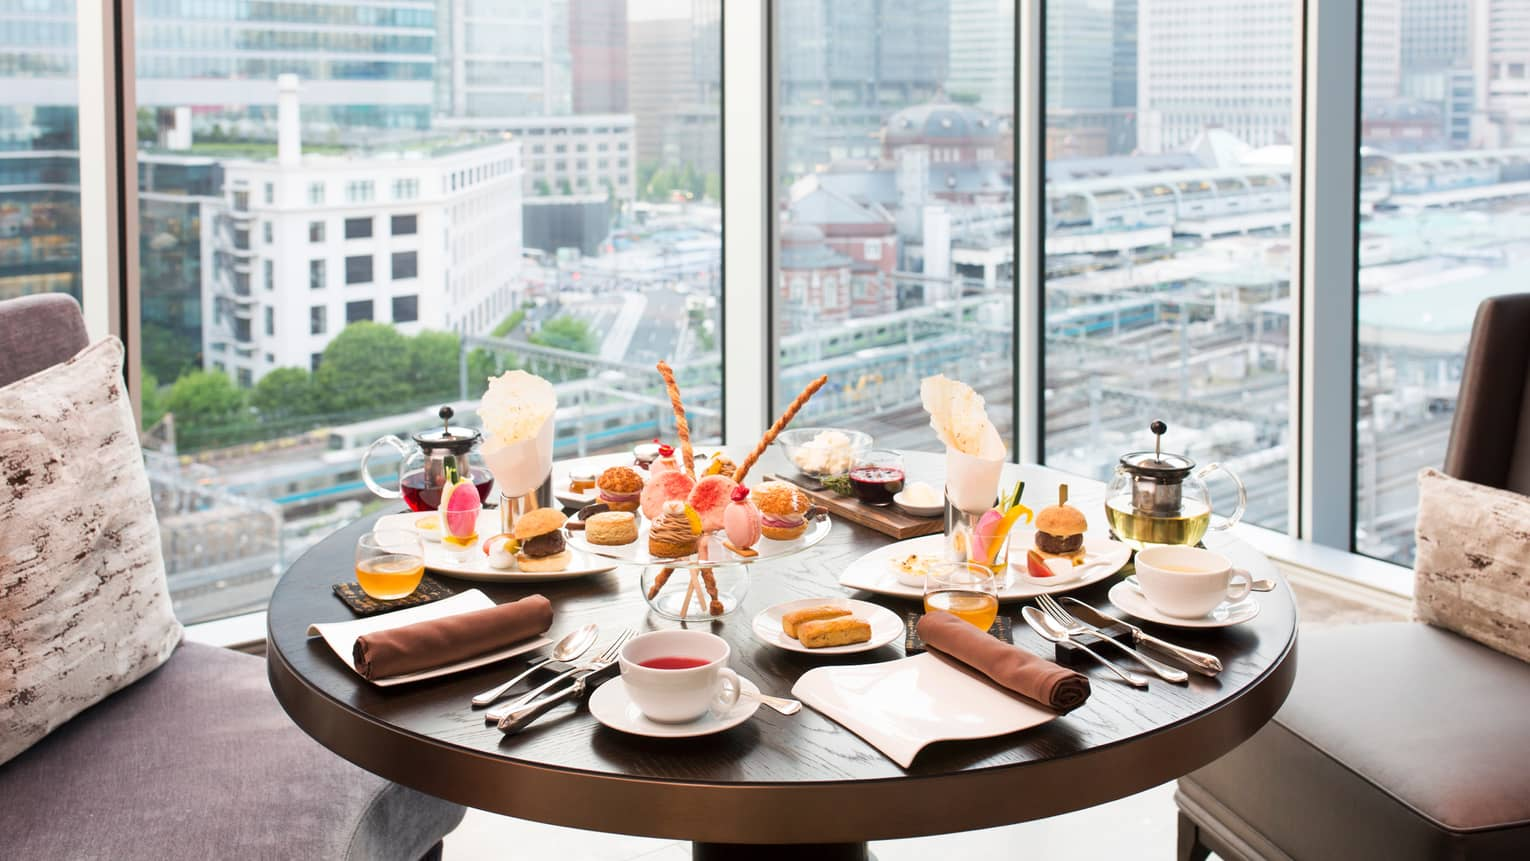 Round table with Afternoon Tea cakes, pastries in front of sunny window overlooking Tokyo Station